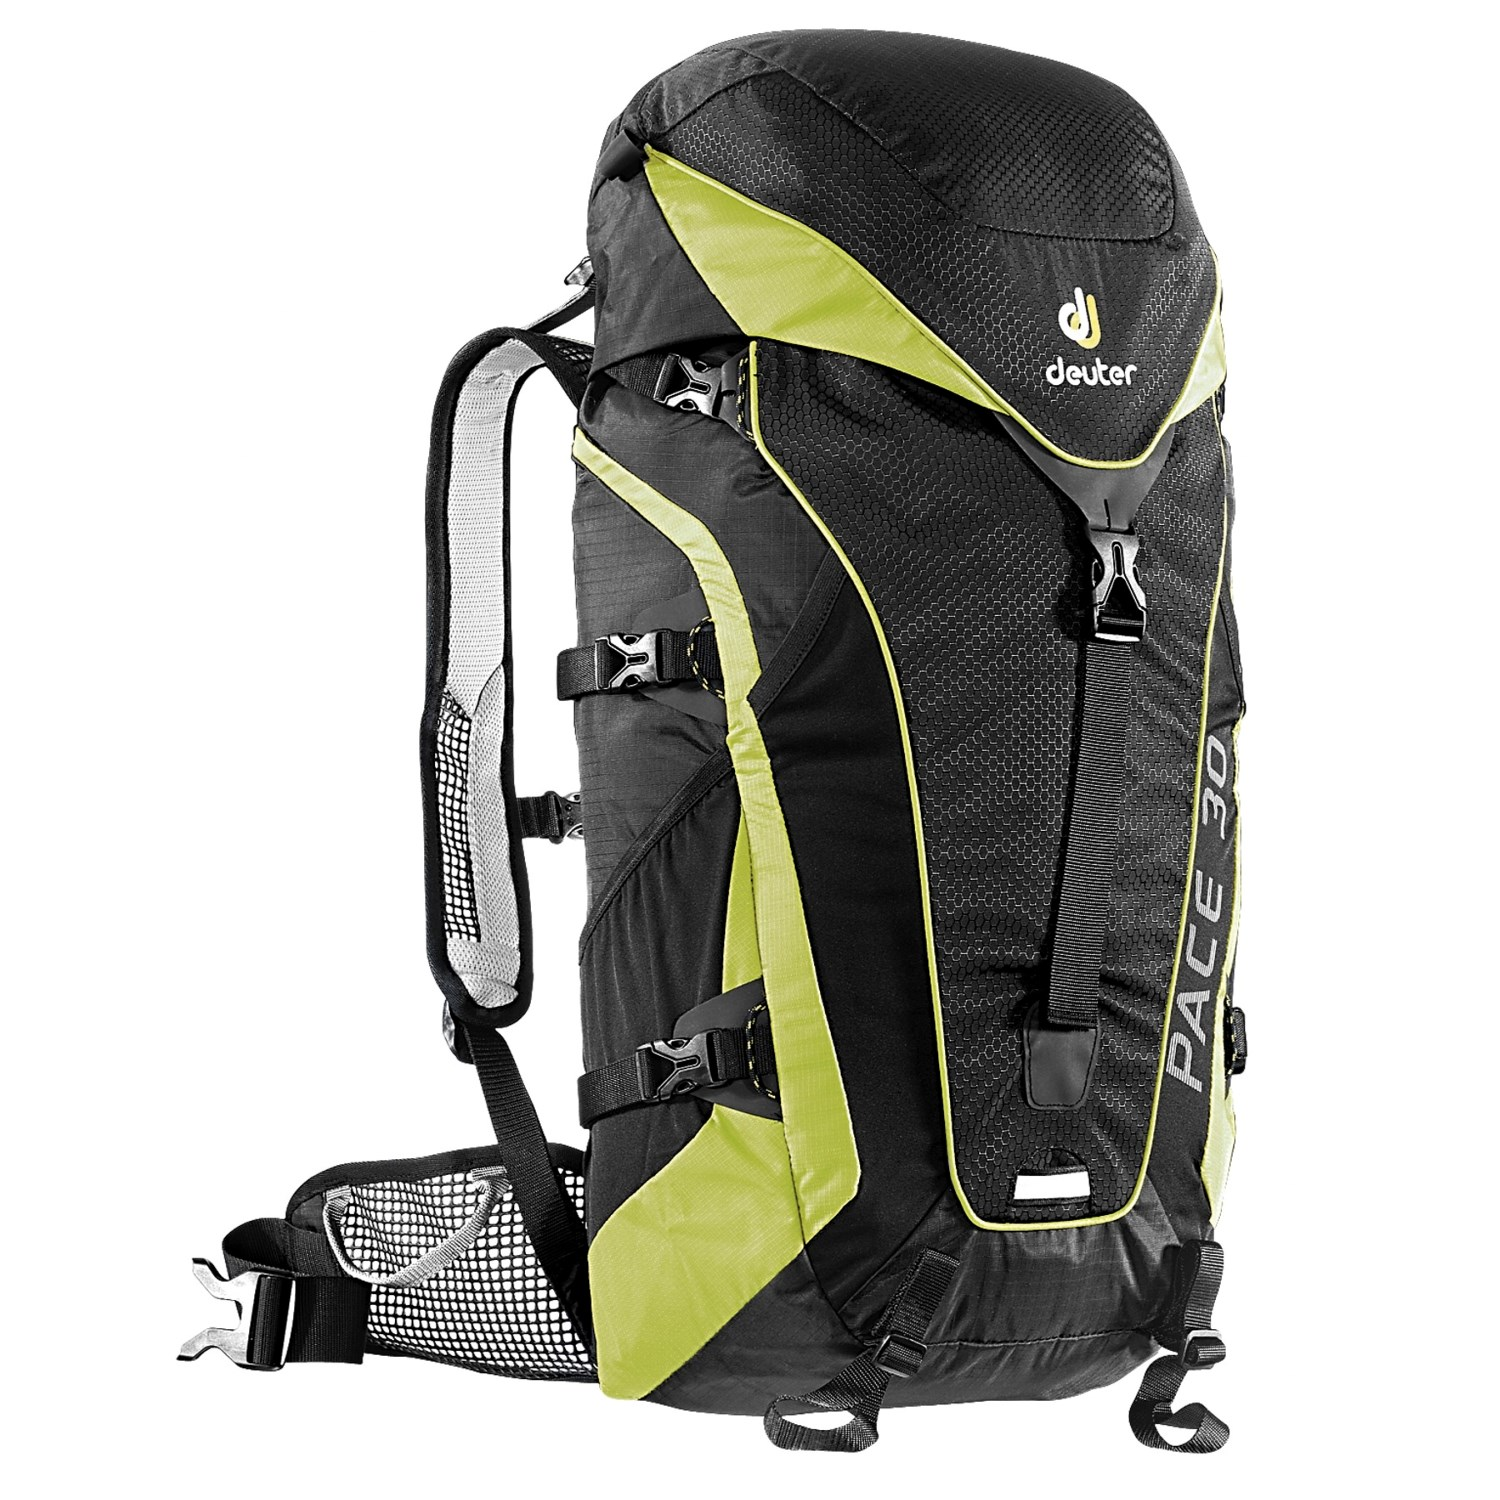 Deuter Pace 30 Backpack Deuter Pace 30 Backpack